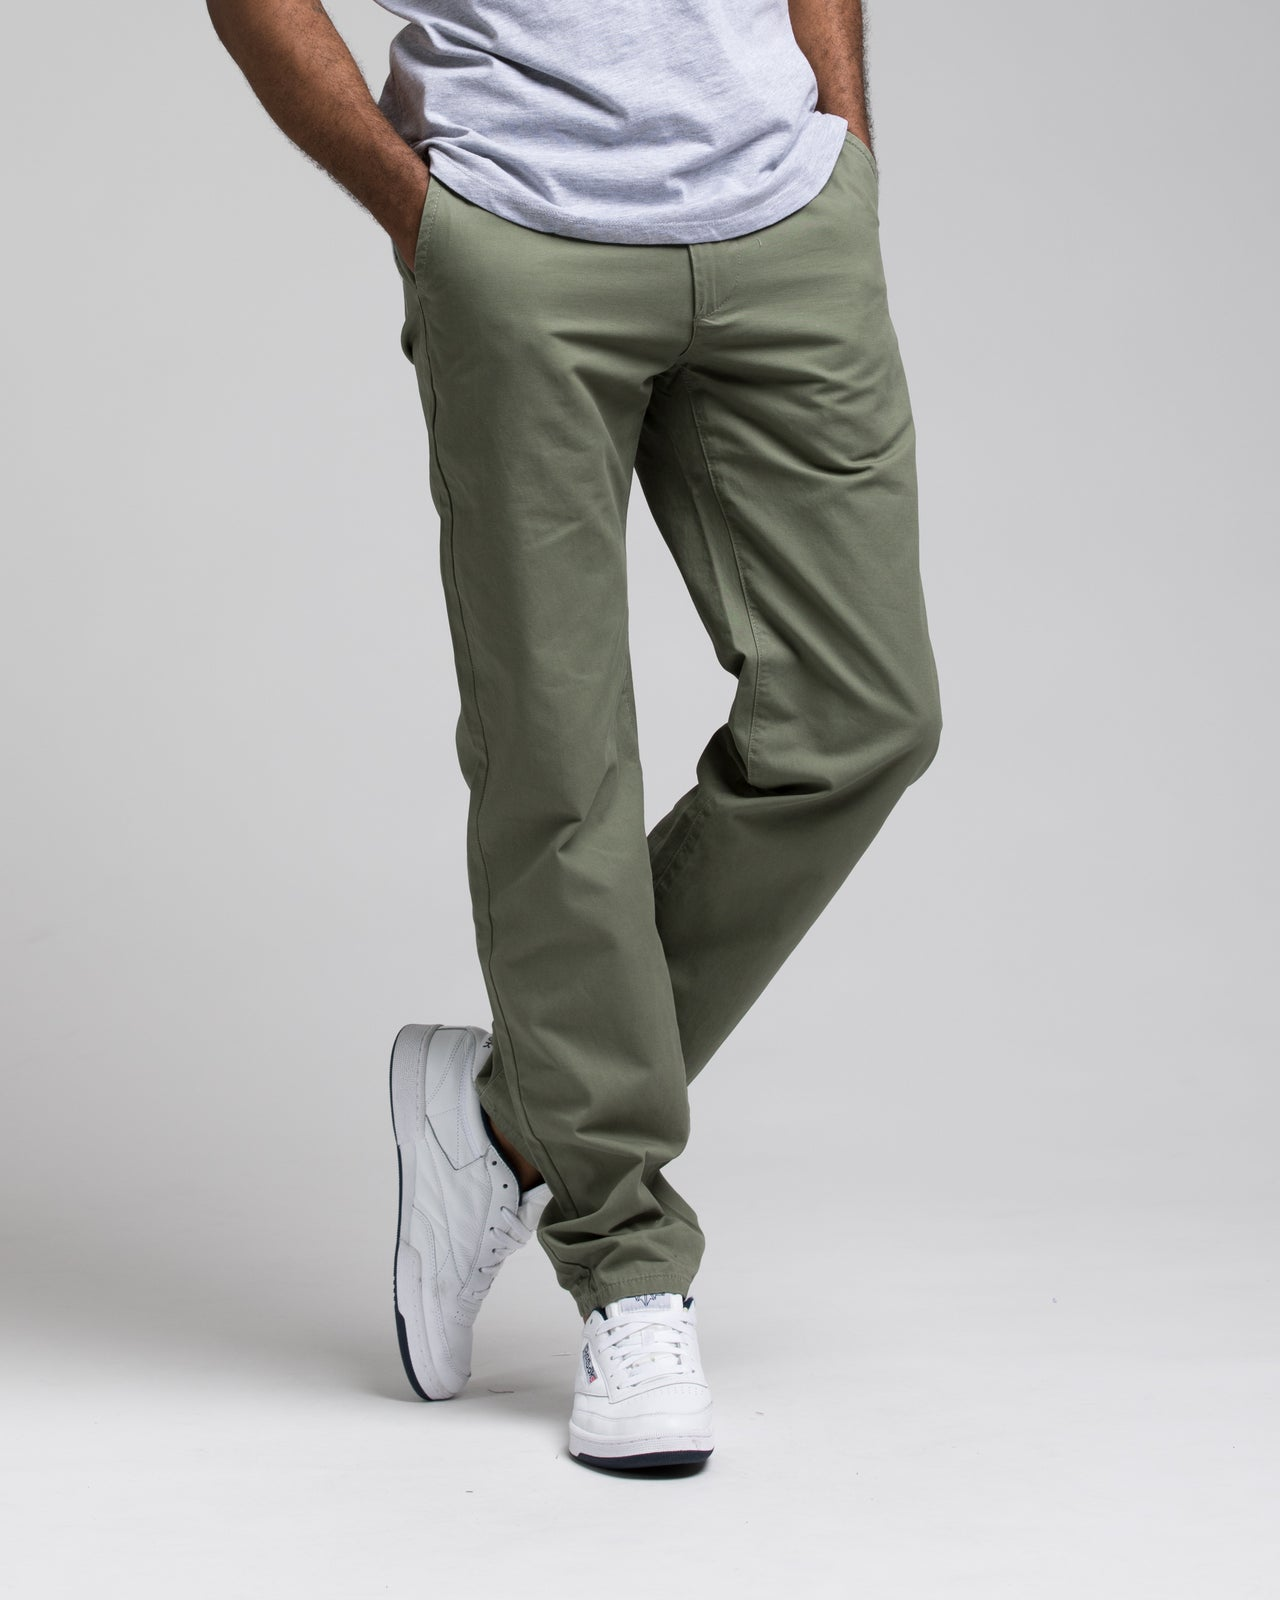 SKINNY CHINO PANTS - Color: OLIVE | Green